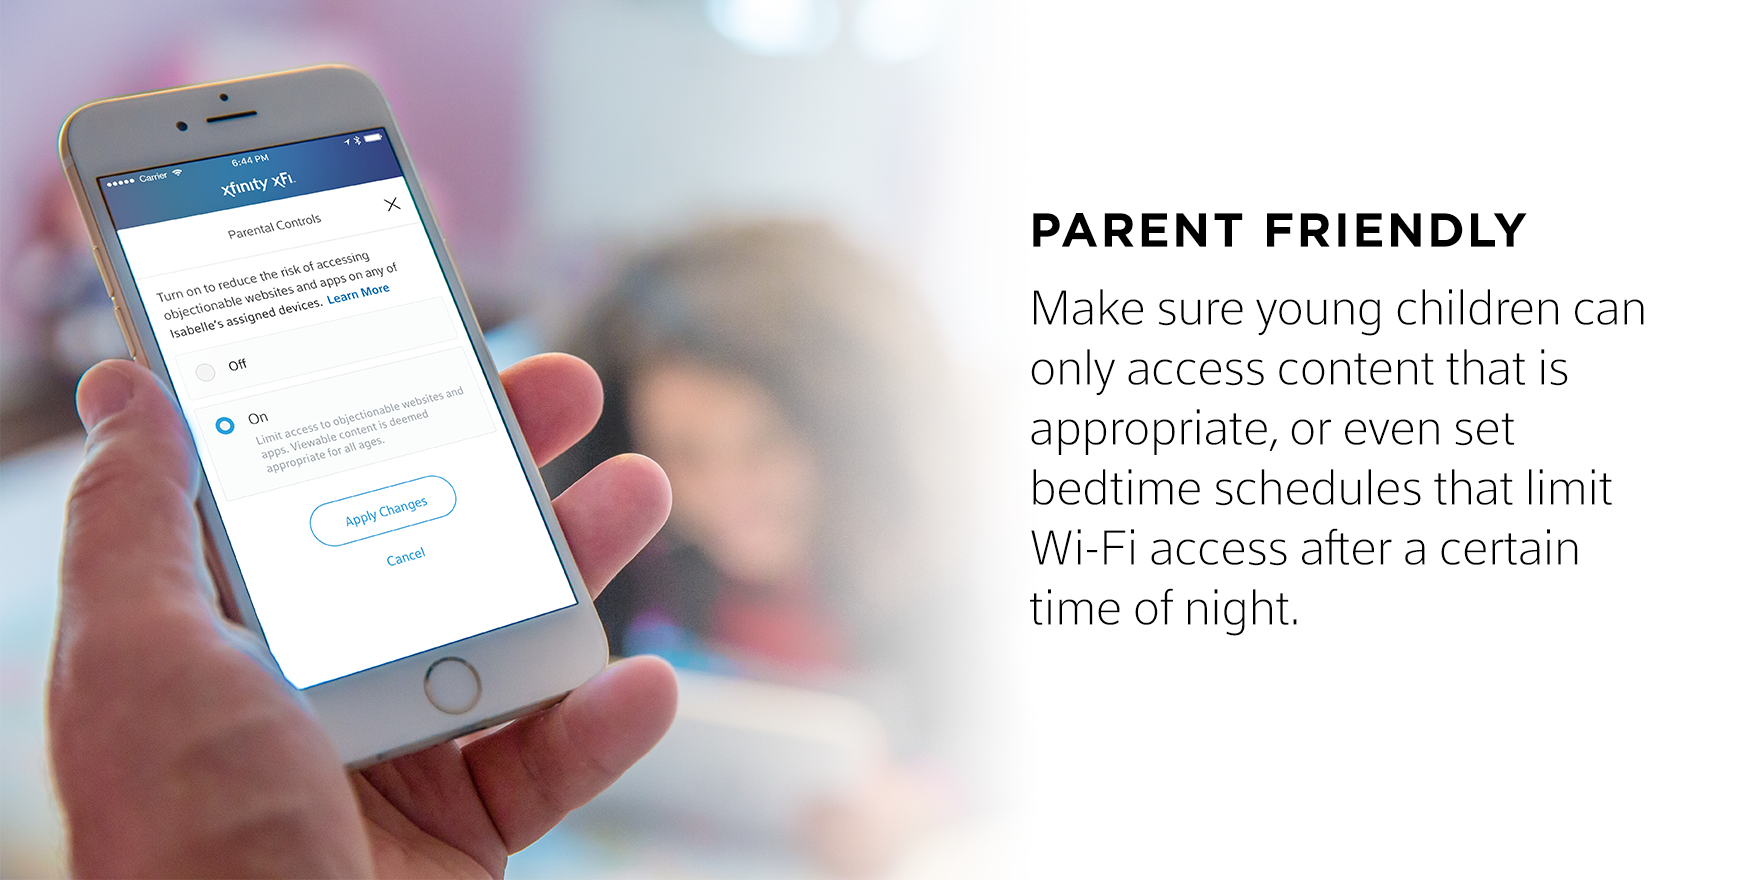 Xfinity Tips: Parental Controls for TV and WiFi